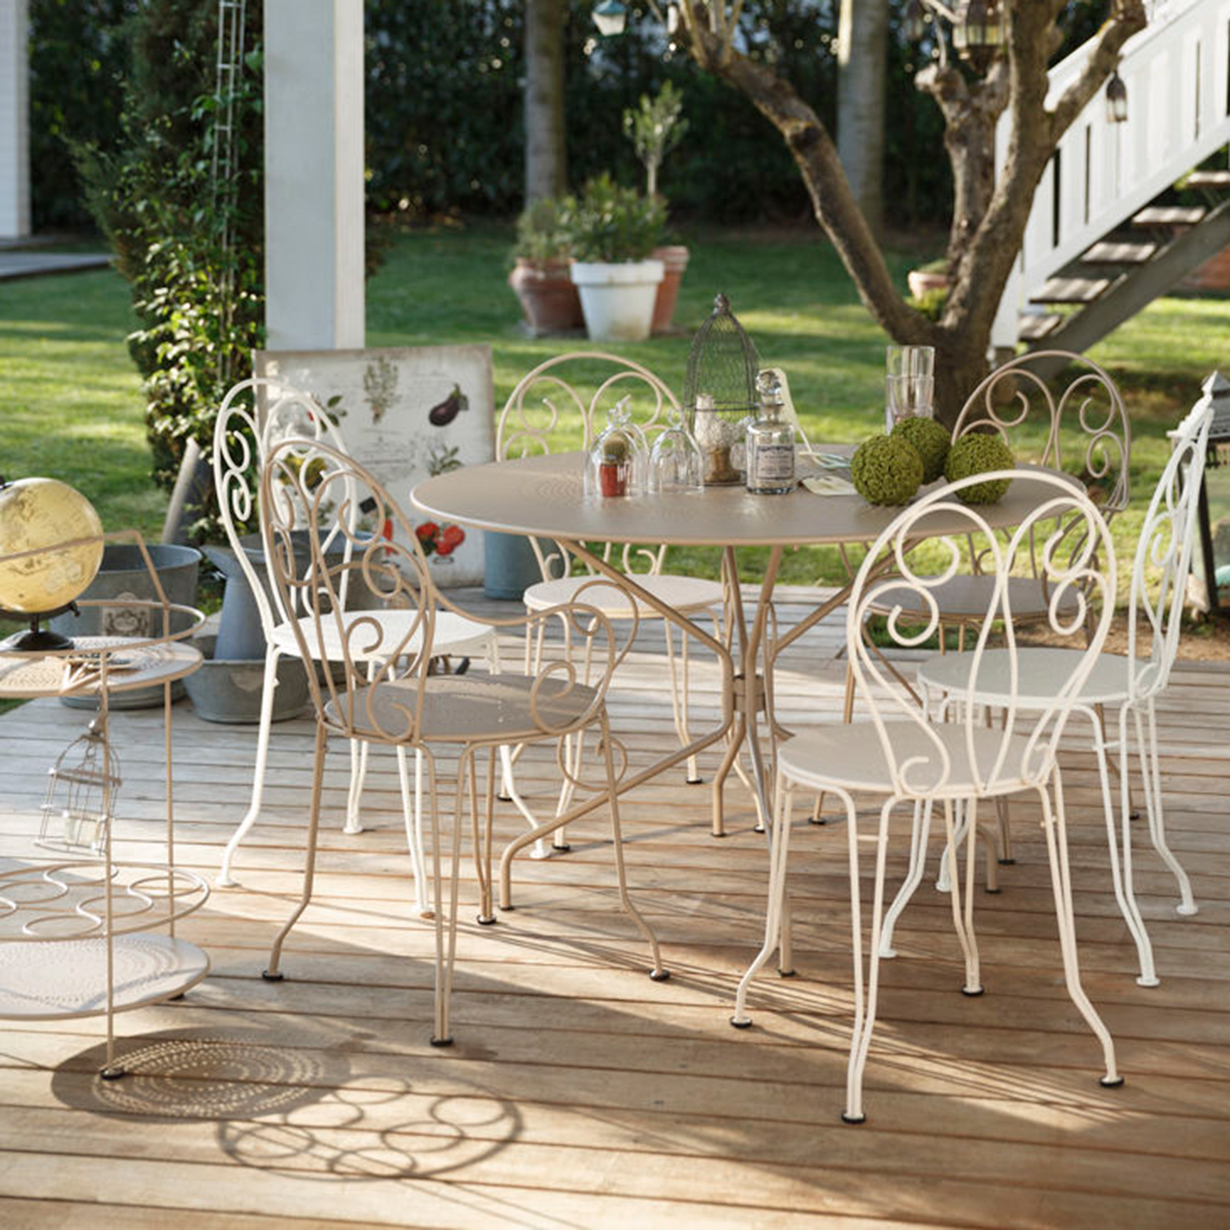 Fermob de la d co de jardin en m tal recycl trendy mood for Decoration jardin en metal